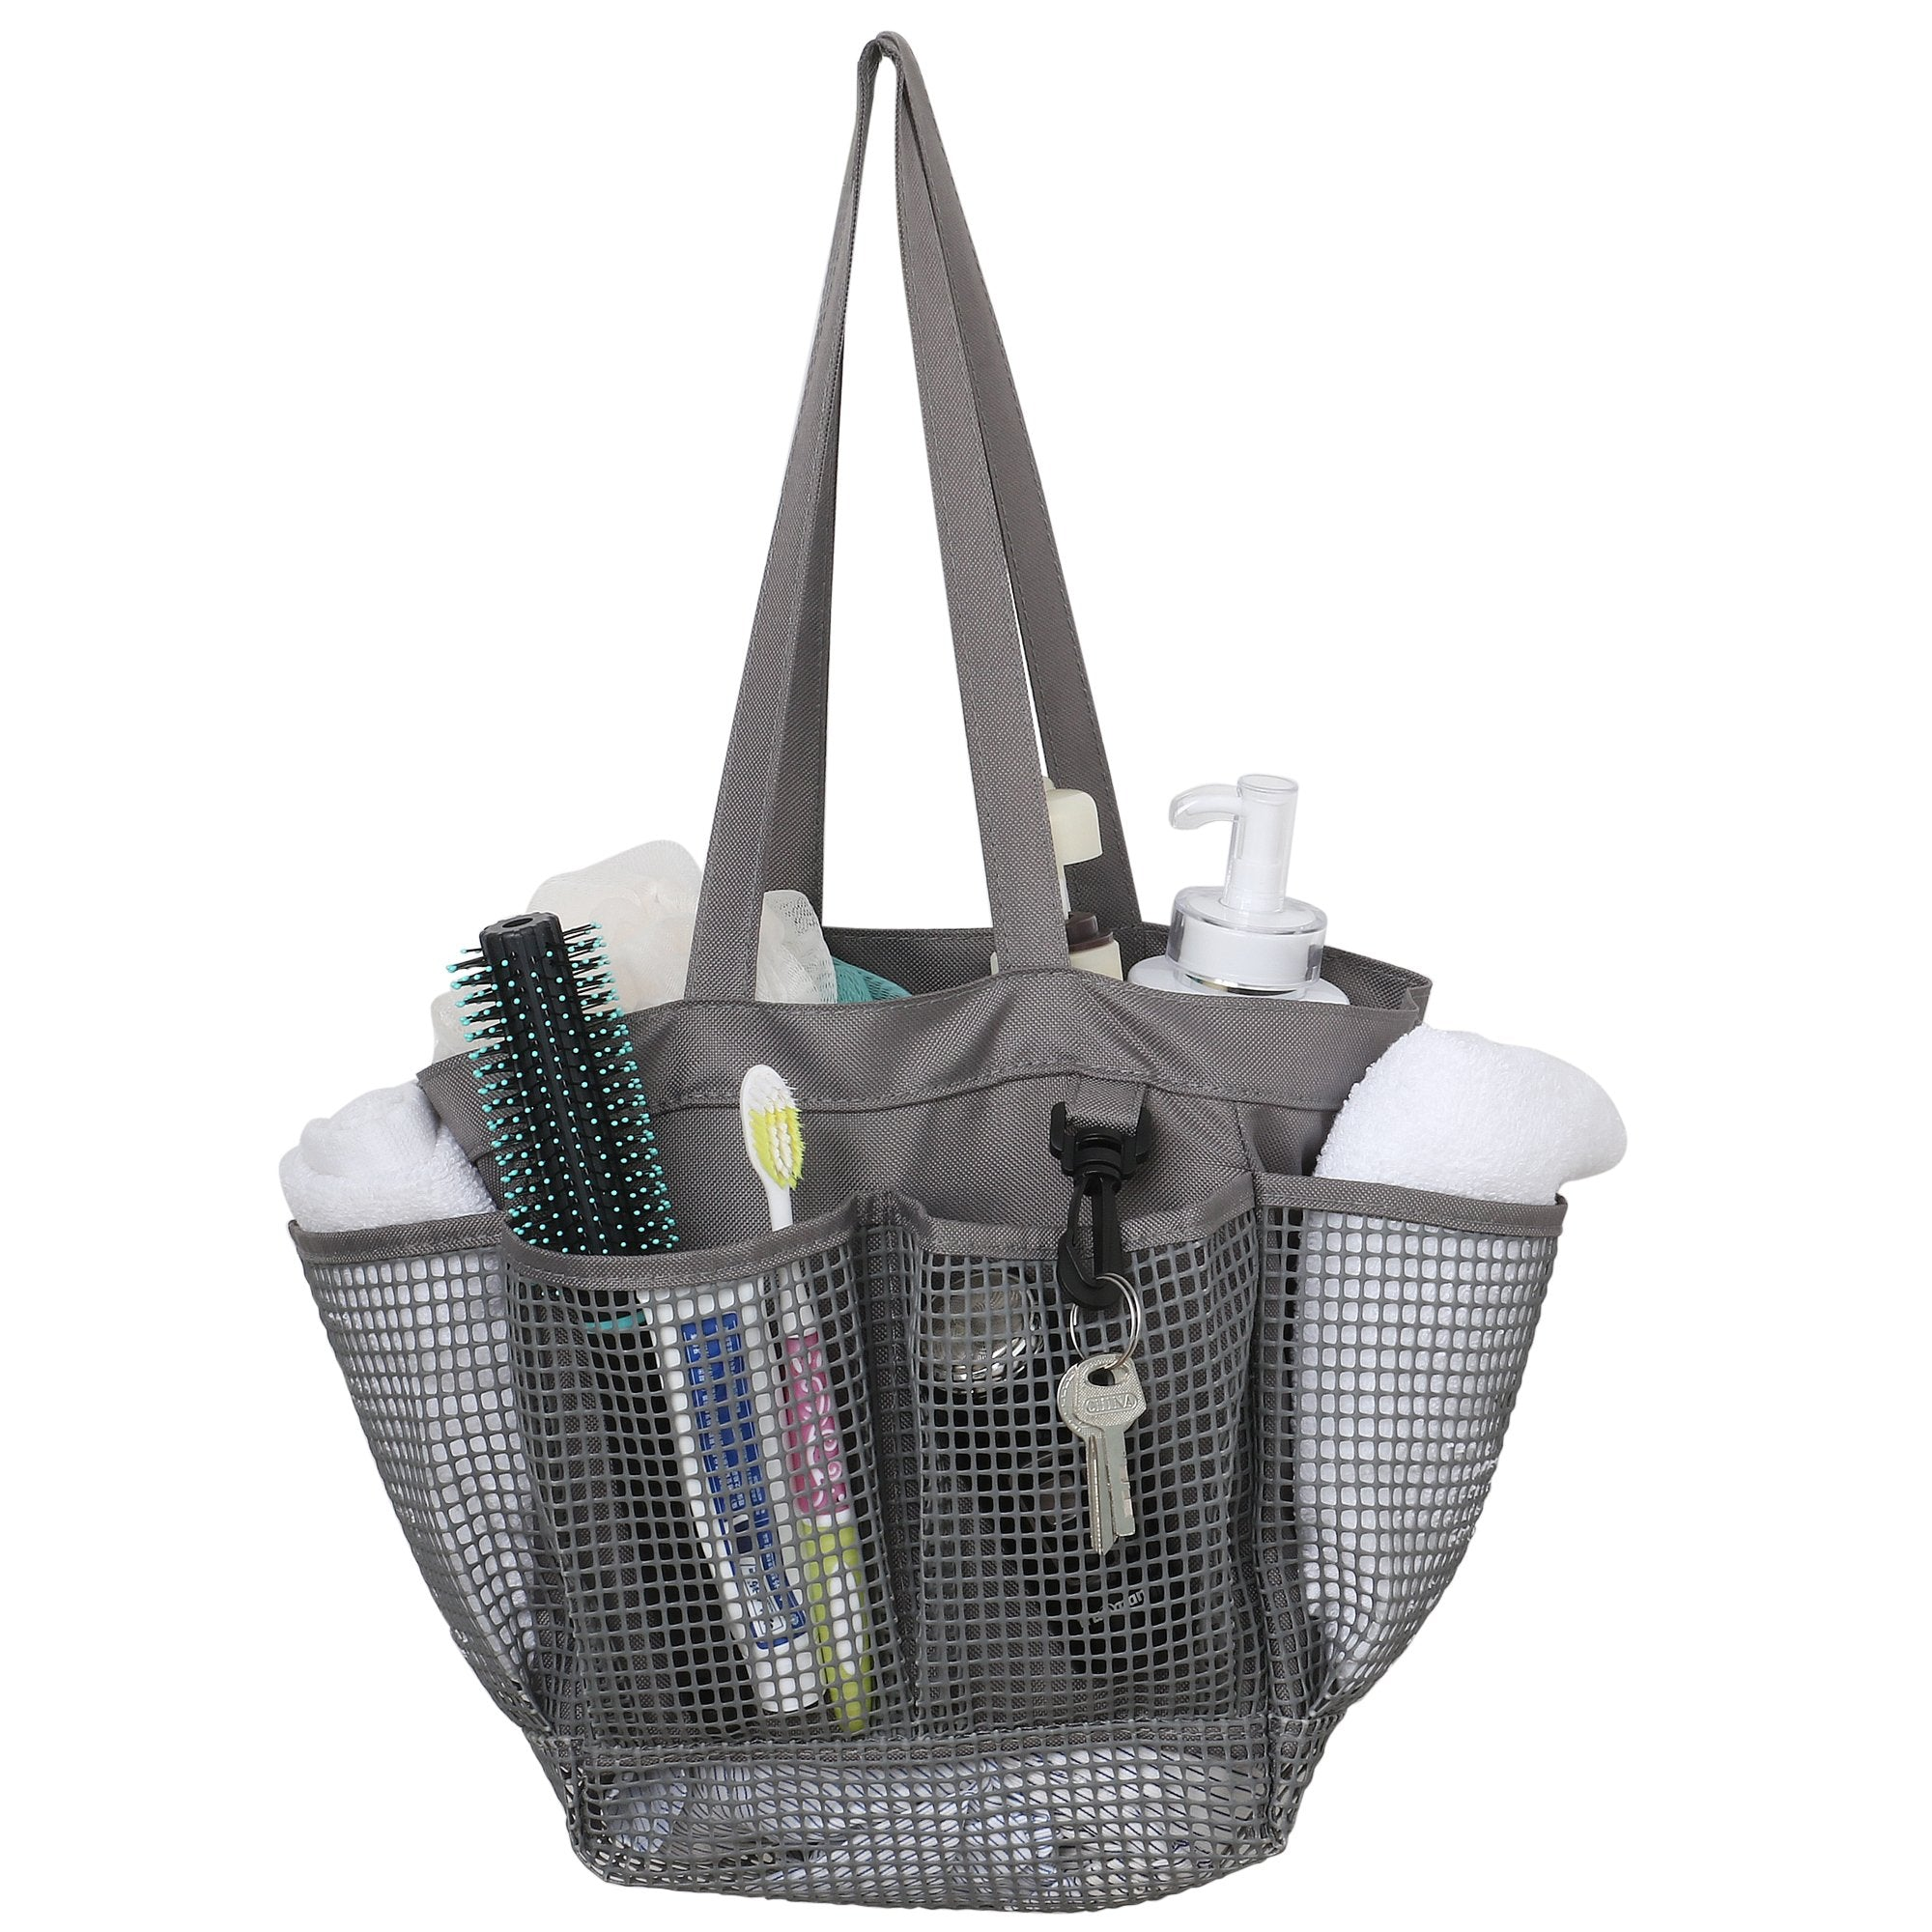 Utopia Alley Mesh Portable Shower Caddy, Quick Dry Shower Tote Bag, Bathroom Organizer Bag, Gray/Blue Color. Perfect For Dorm, Gym, Bath with Handles.